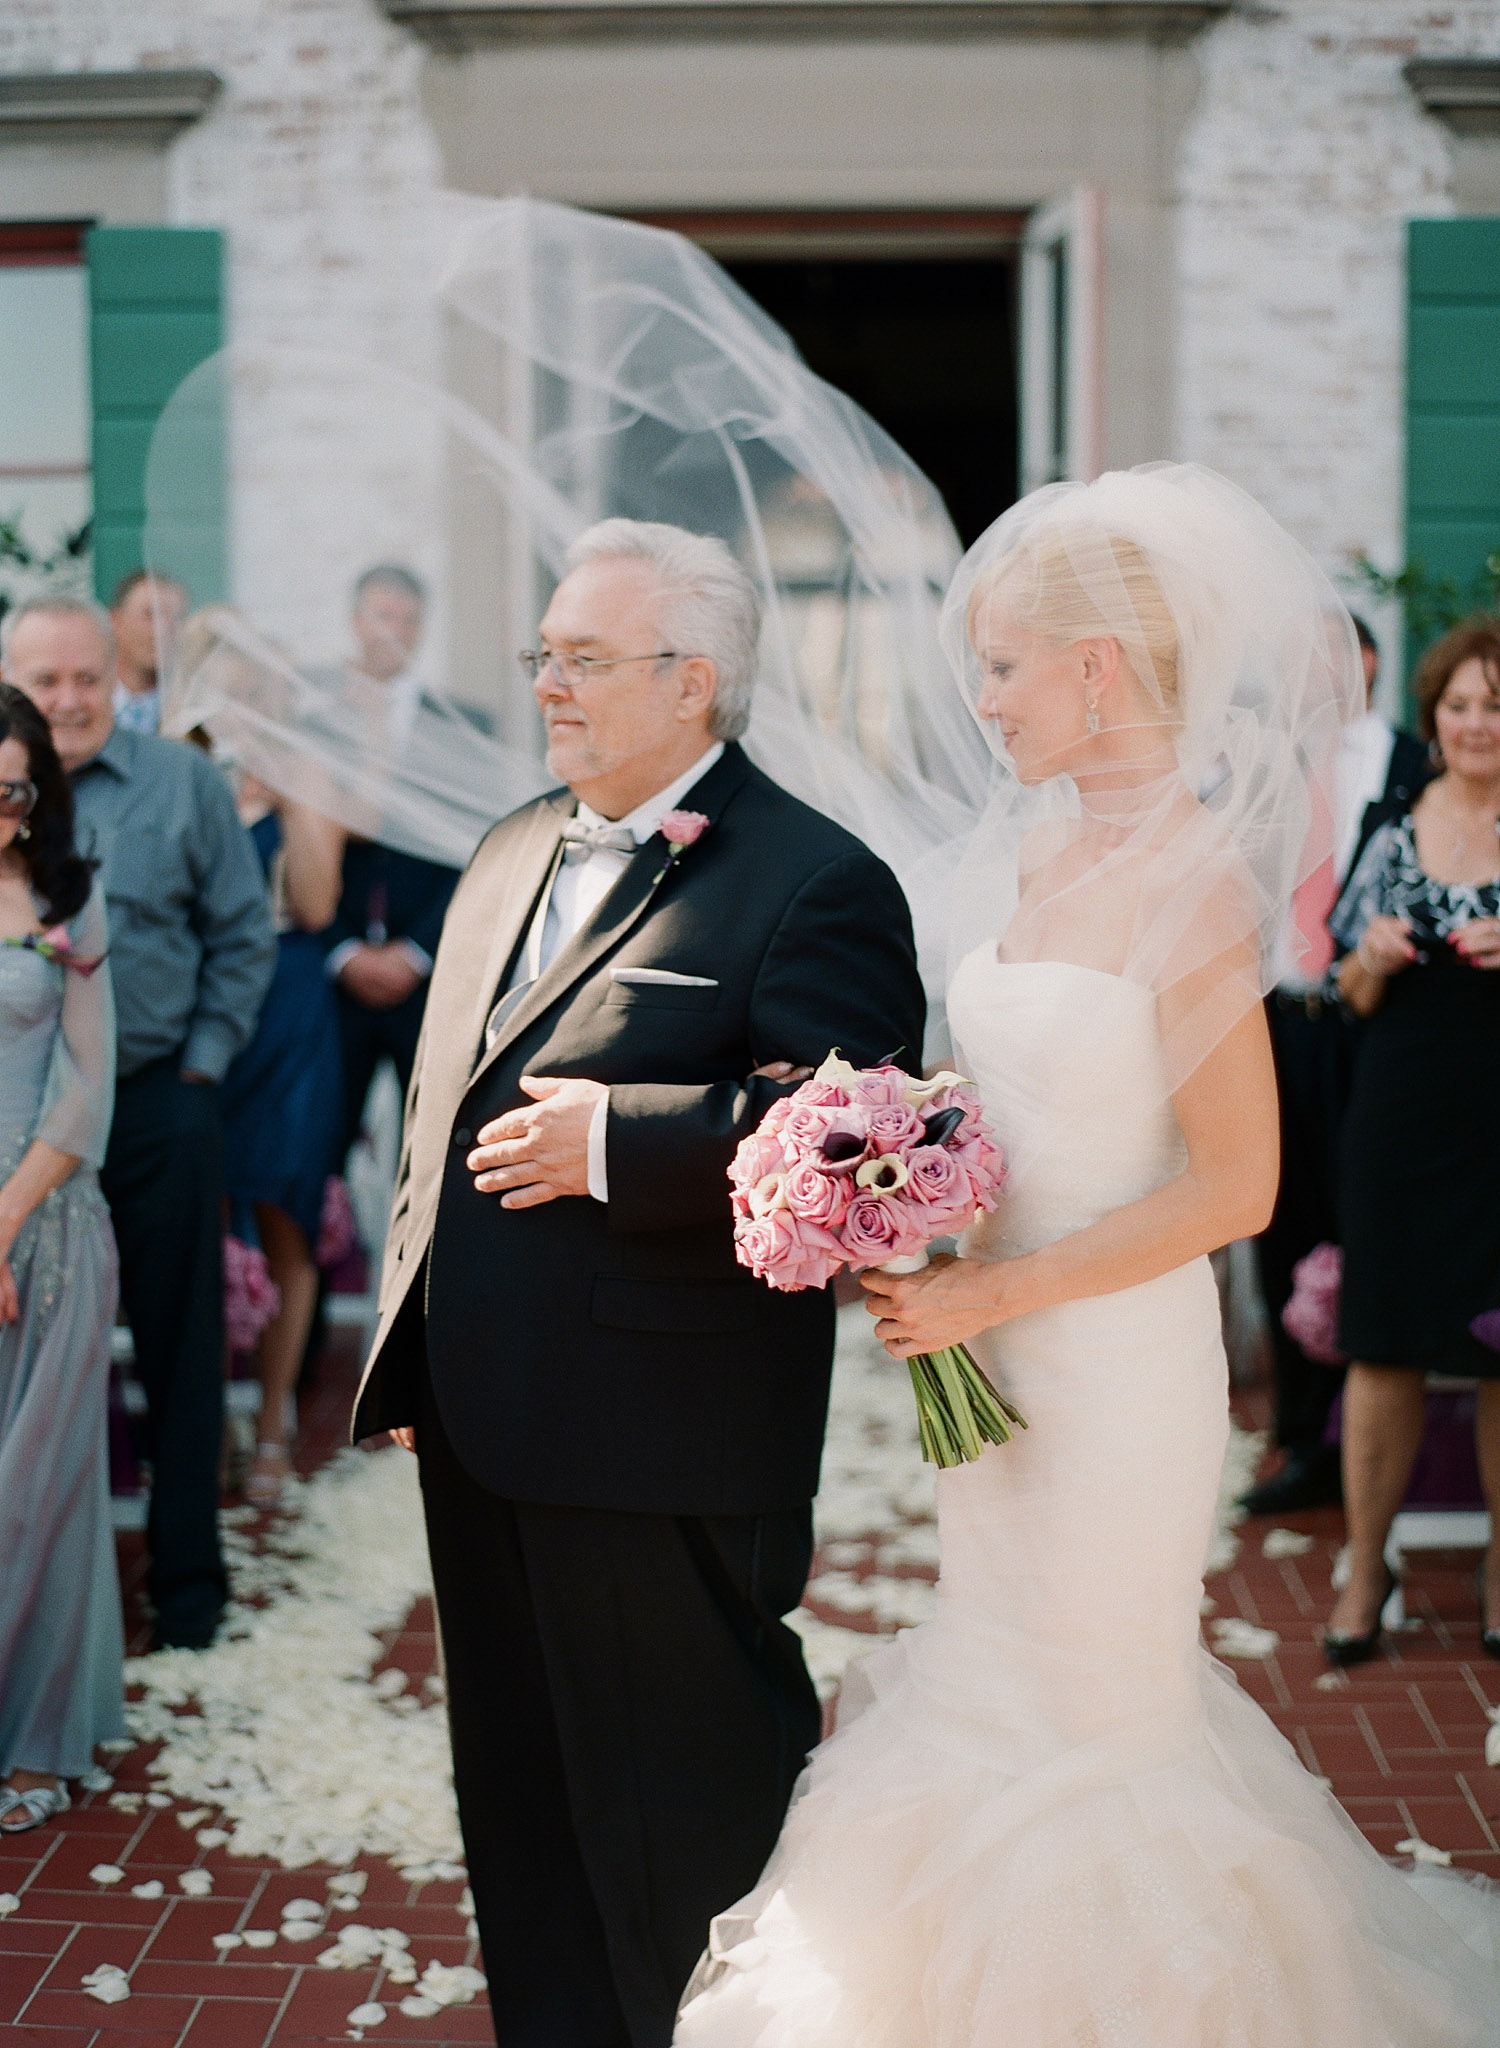 the wind blows the veil of the bride as she stands with her father during her Italian destination wedding at the Villa terrace - a favorite wedding venue of destination wedding photographer Lexia Frank, who is a film photographer of Luxury Weddings